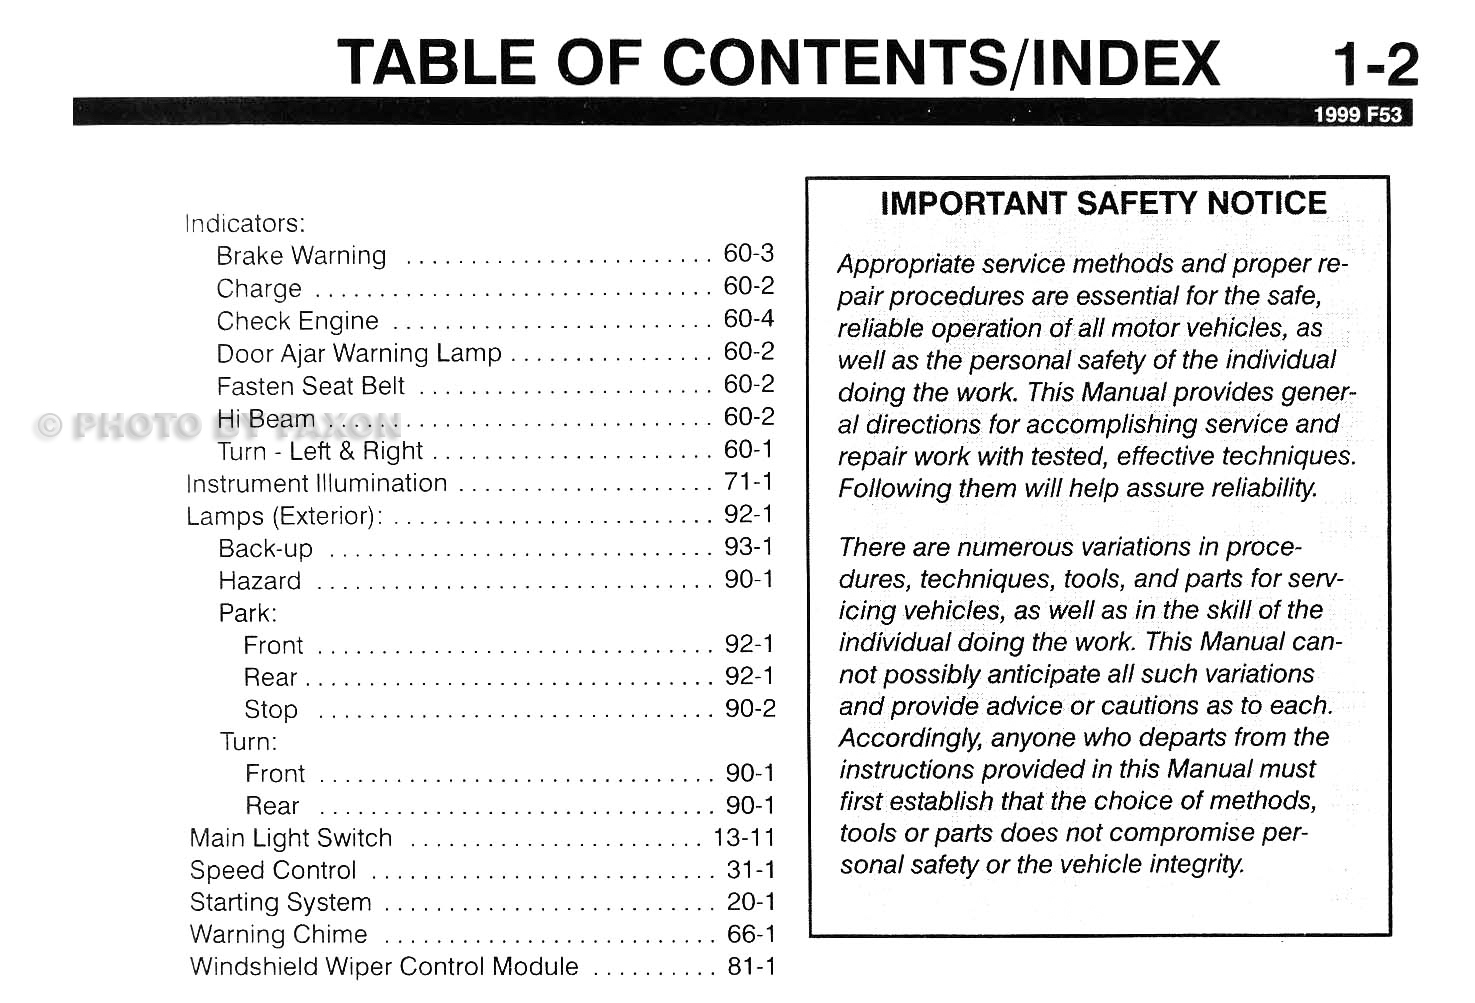 1999 Ford F53 Motorhome Class A Chassis Wiring Diagram Manual 1992 F150 Schematic Table Of Contents Page 2